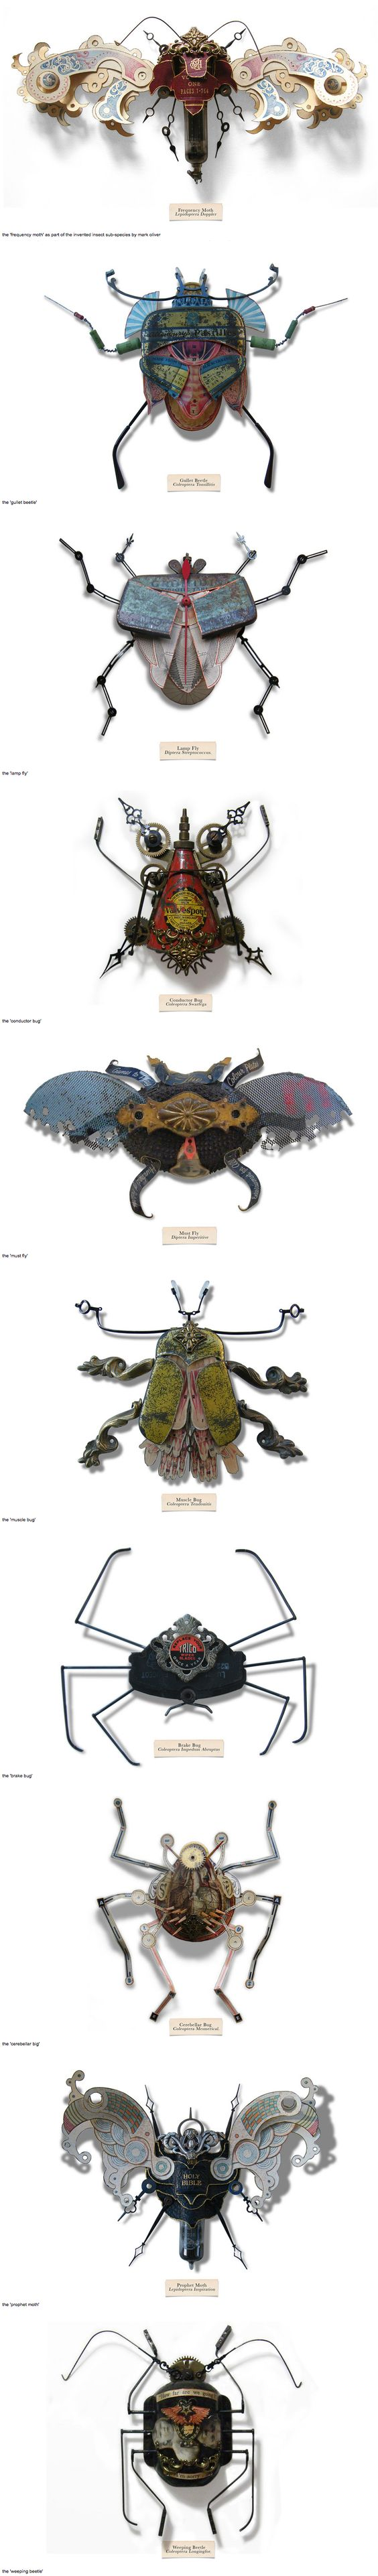 """Mark Oliver has created a series of insects called """"LitterBugs"""" brought to life entirely from trash; a species developed to adapt to the harsh, changing urban landscape. They are part of an invented genus, affectionately categorized in a document known as the """"compendium of carabid and terrestrial detritus""""  – each one having been given their own title and scientific name, some based off the found objects from which they are built.:"""